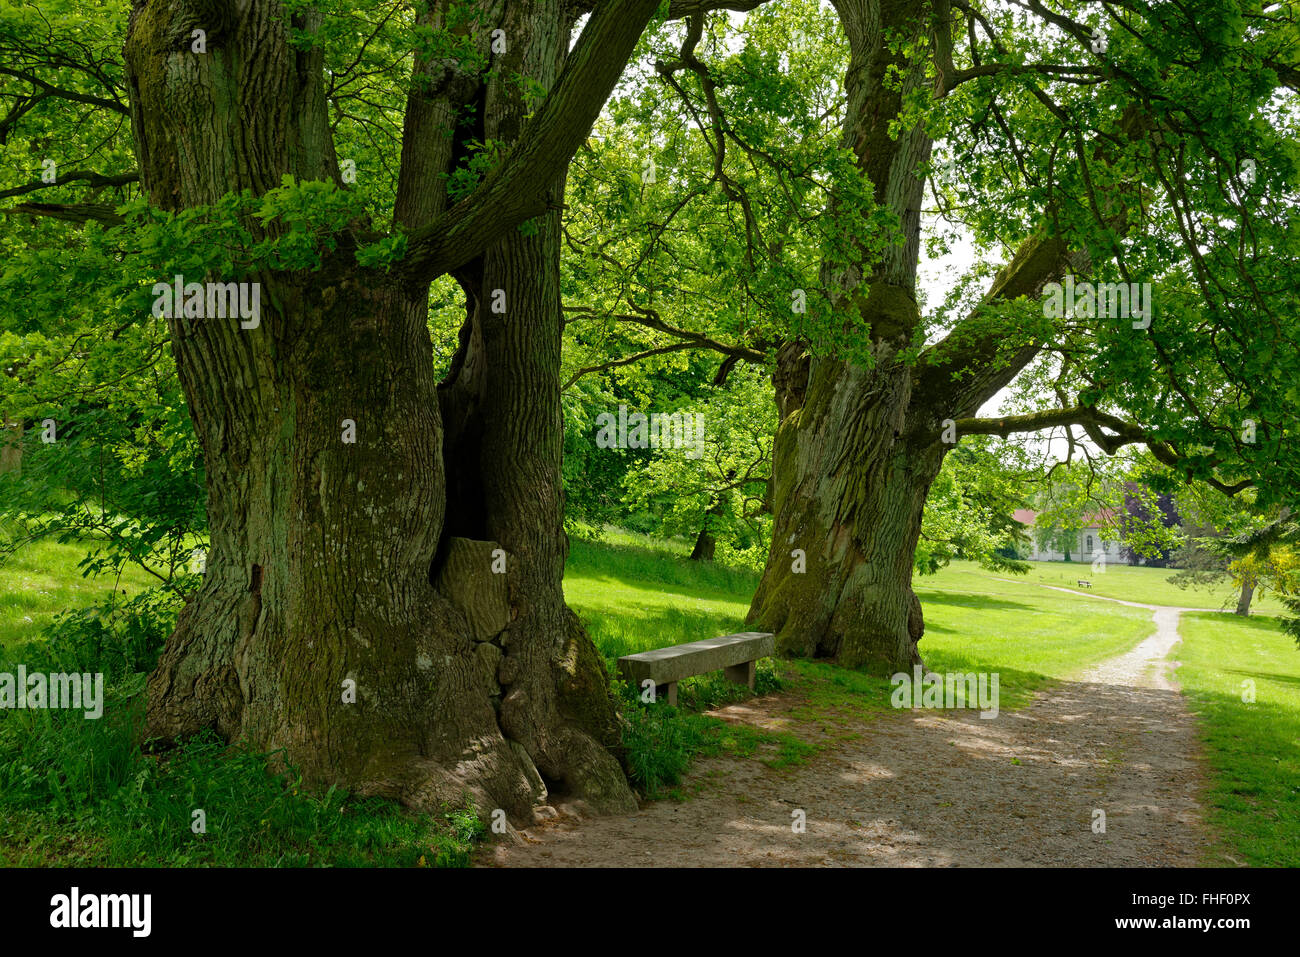 Mighty oaks, old trees in the palace garden, Putbus, Rügen, Mecklenburg-Western Pomerania, Germany Stock Photo